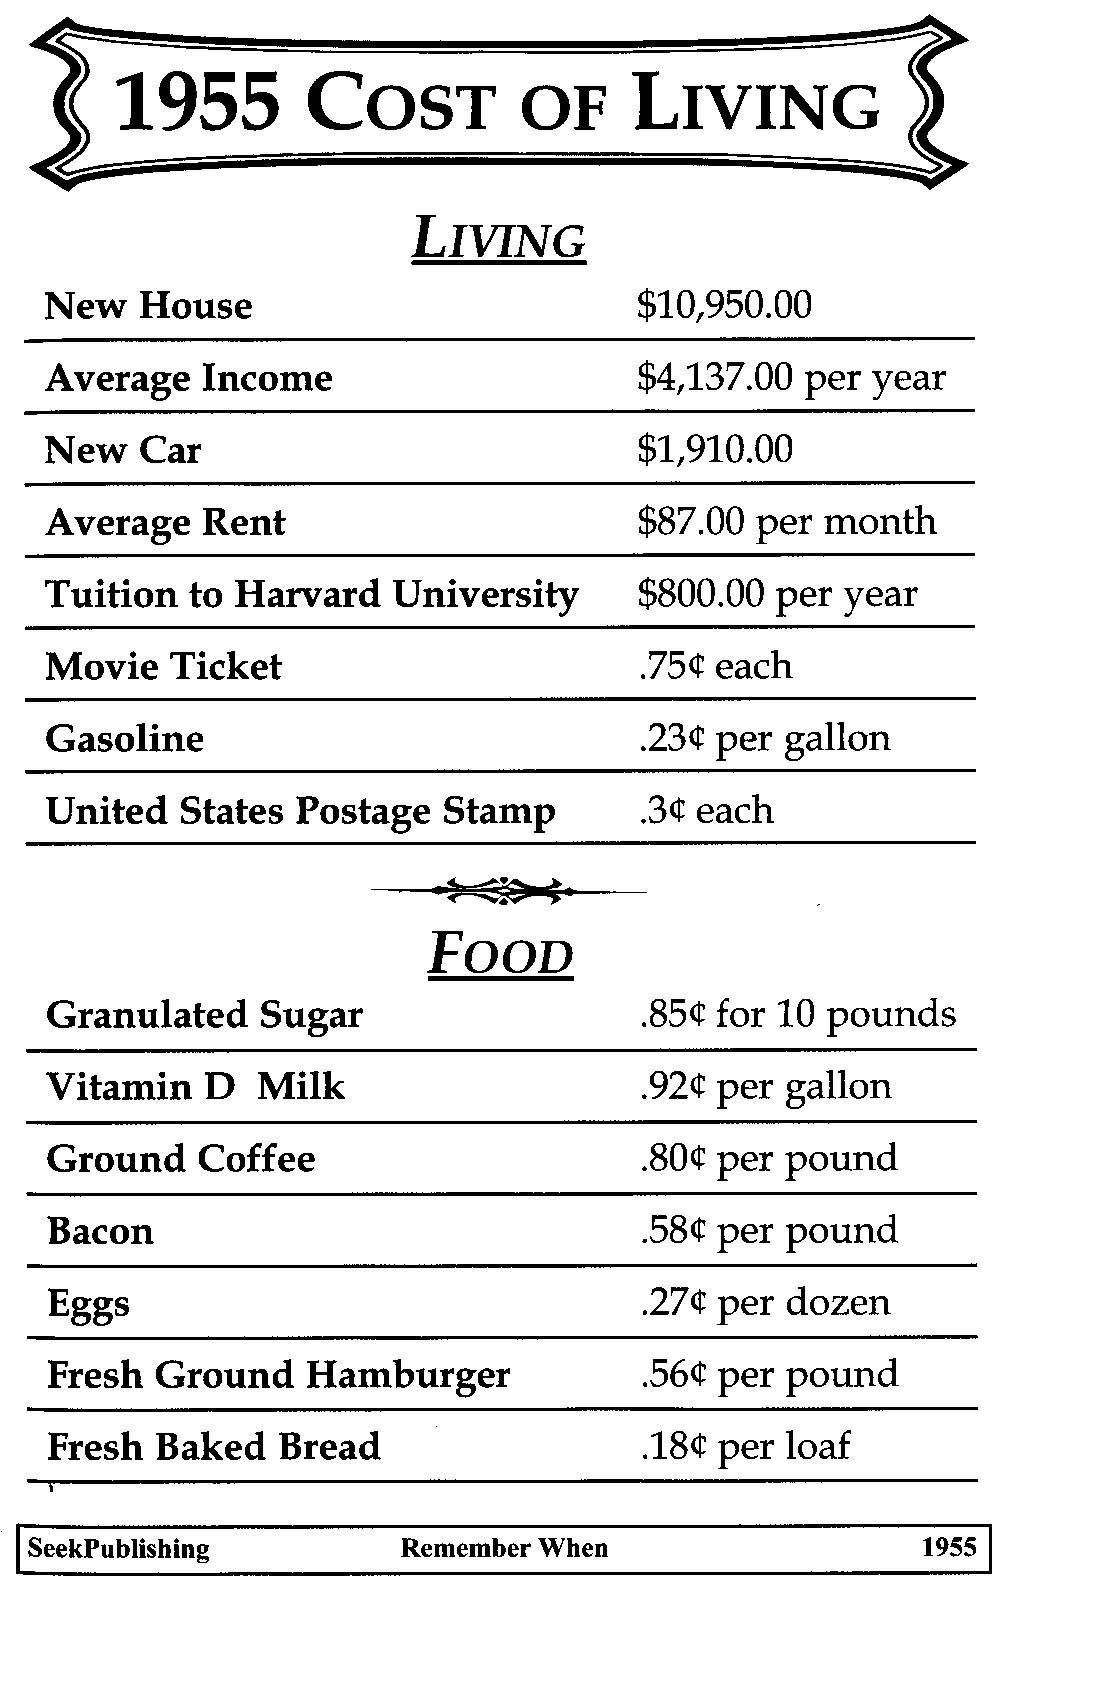 Cost Of Living Proof Of Inflation When I Was Born